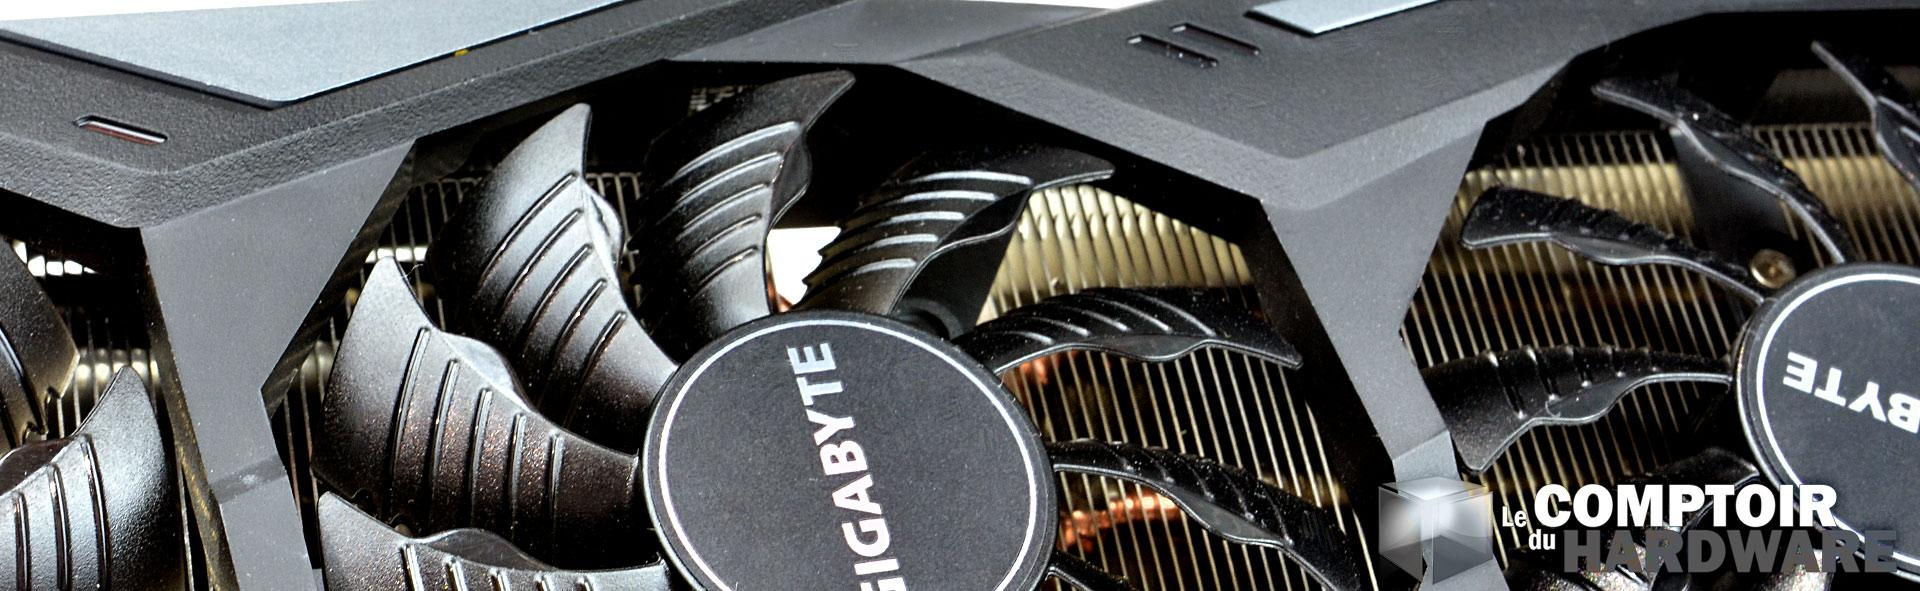 review gigabyte  rtx 2080 ti gaming oc